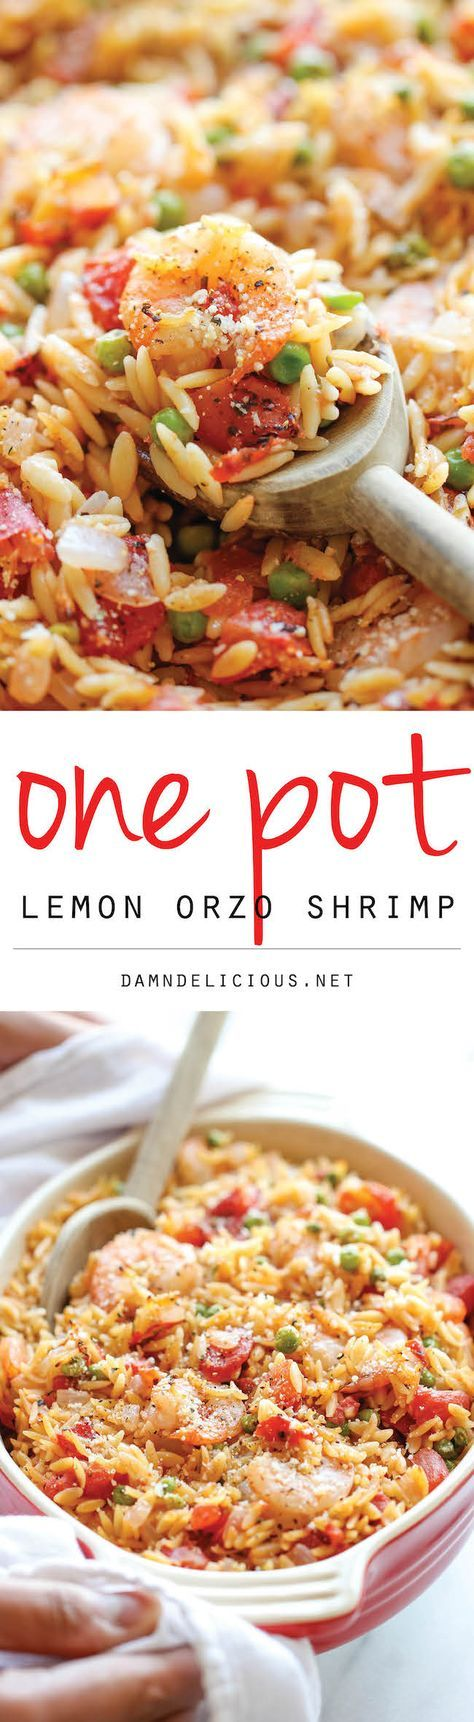 One Pot Lemon Orzo Shrimp - A super easy one pot meal that the whole family will love – even the orzo gets cooked right in the pot!